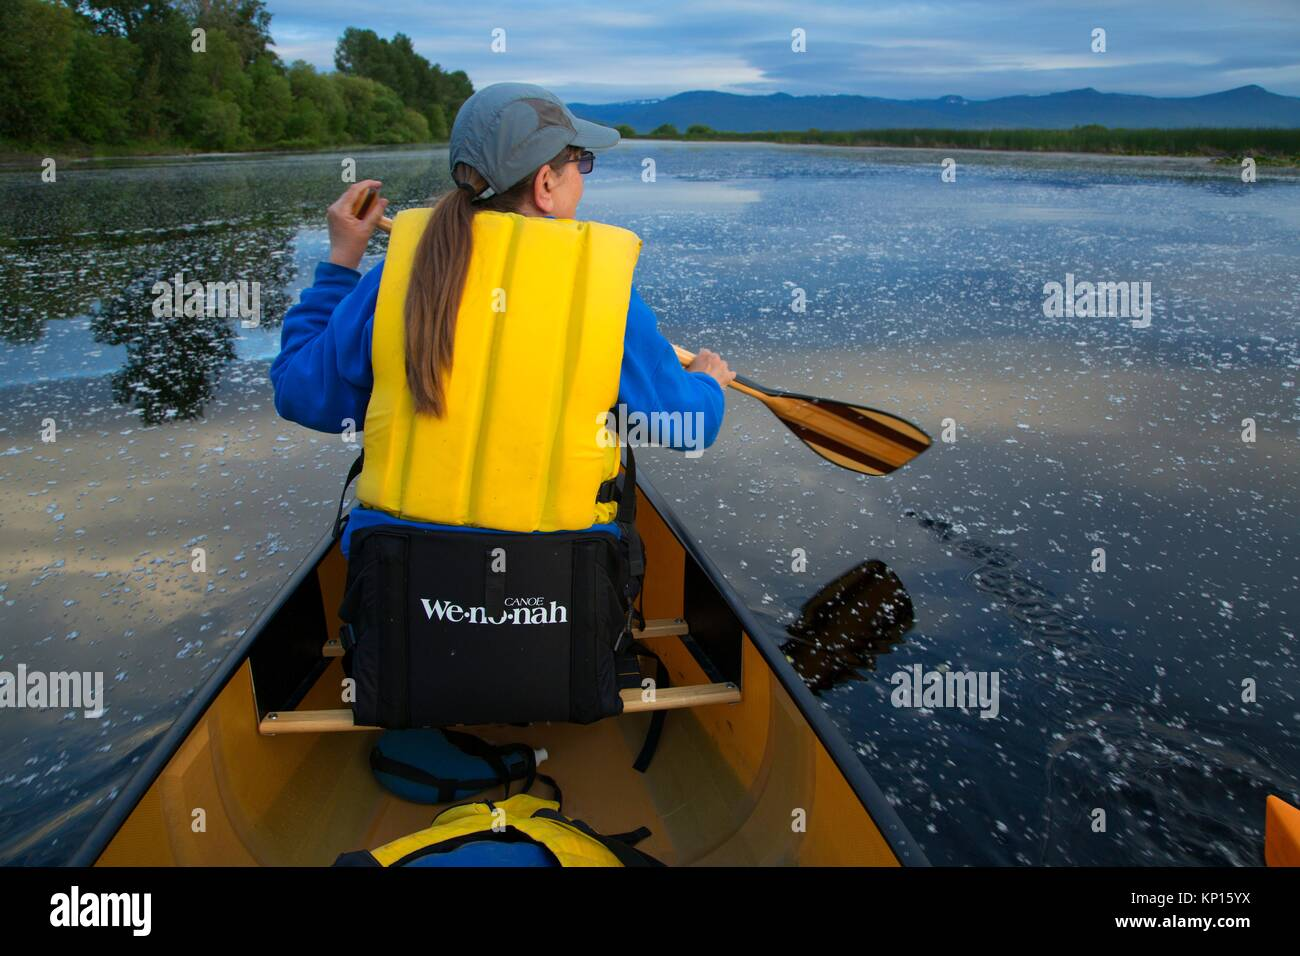 Canoeing, Wood River Wetland, Klamath Falls District Bureau of Land Management, Oregon. - Stock Image